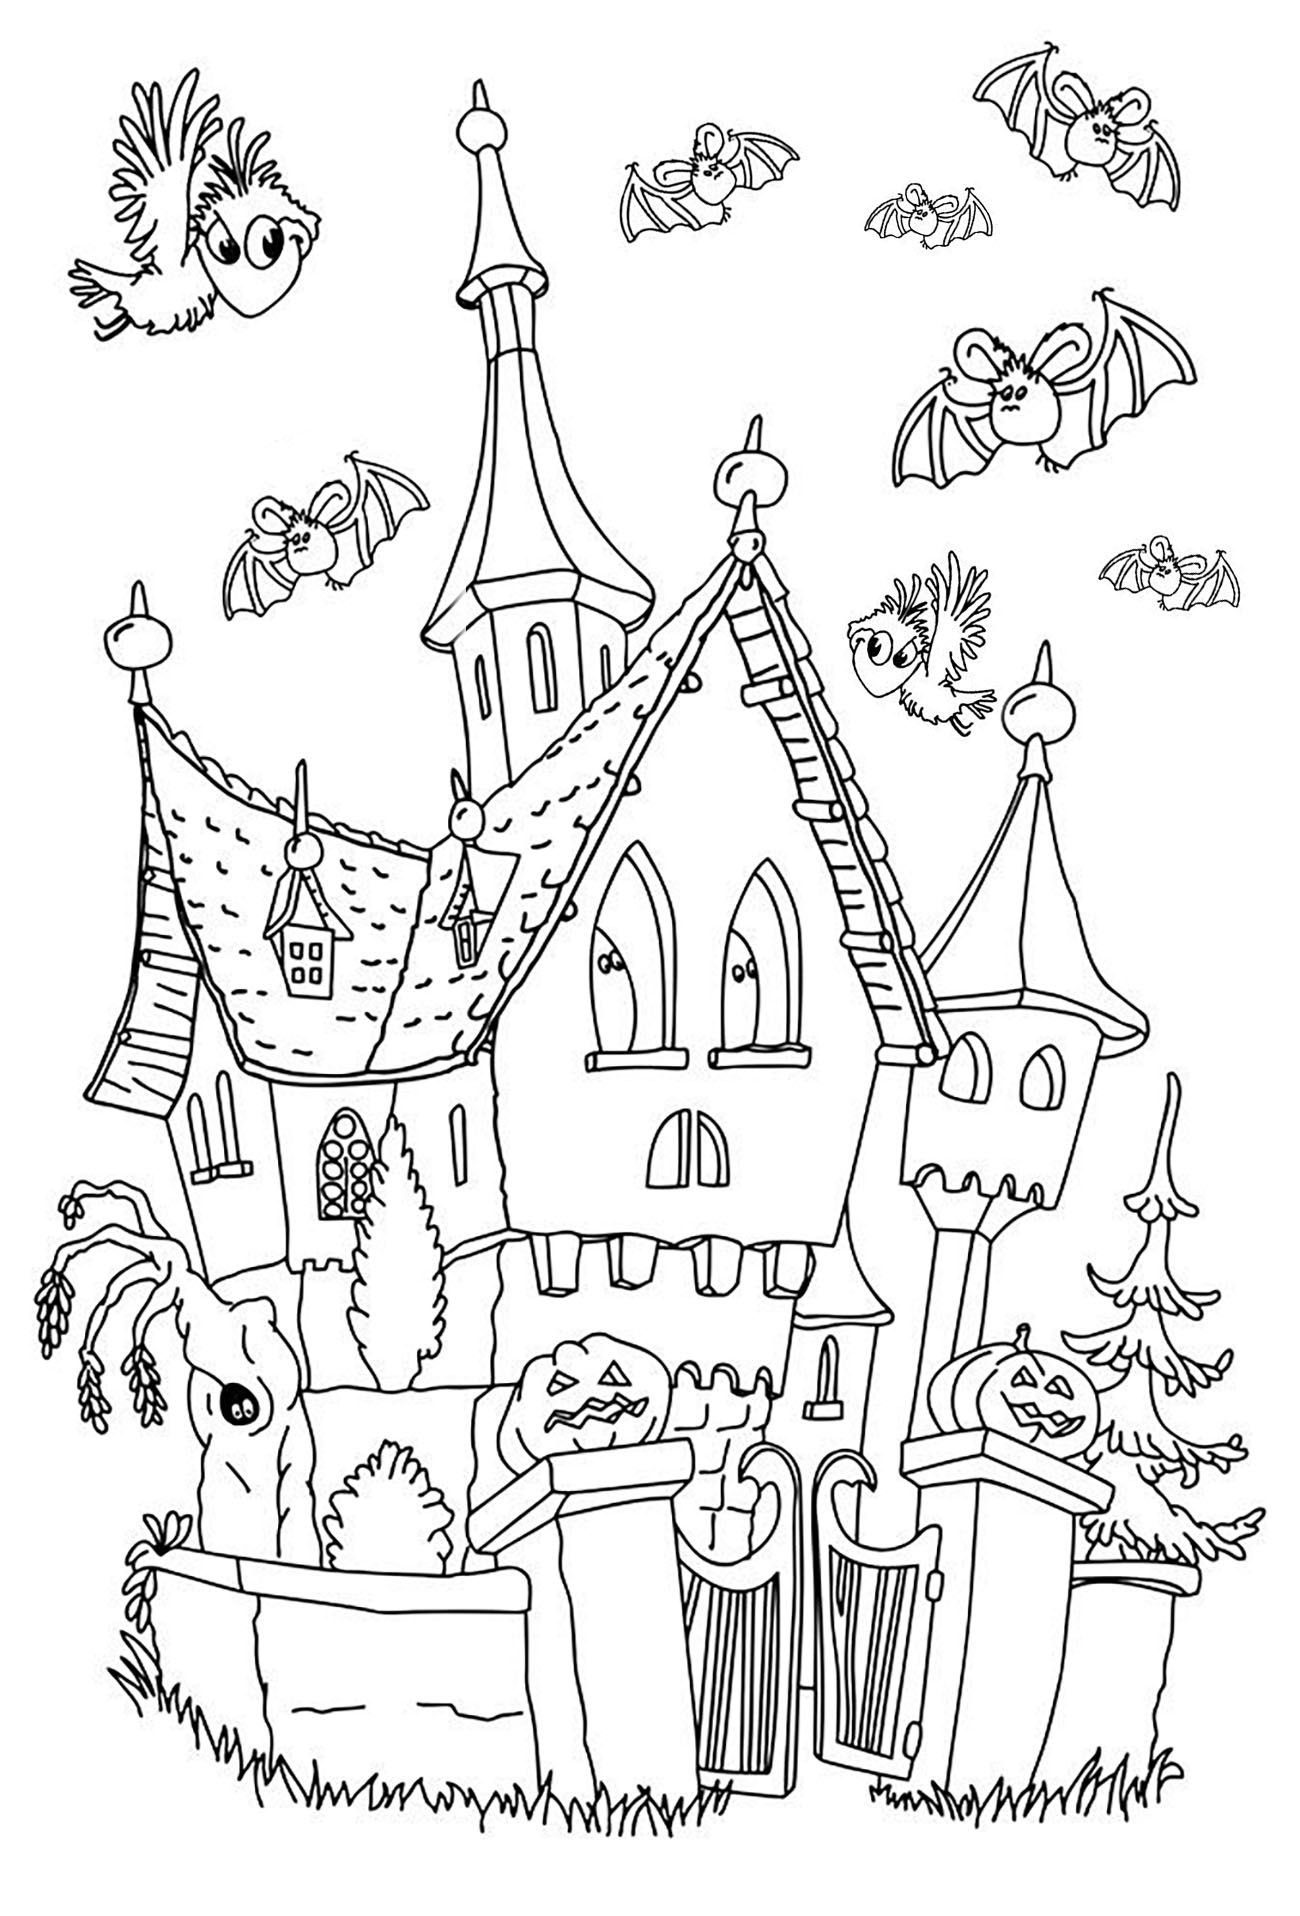 Haunted Castle Cartoon Style From The Gallery Events Halloween Halloween Coloring Halloween Coloring Pages Coloring Book Pages